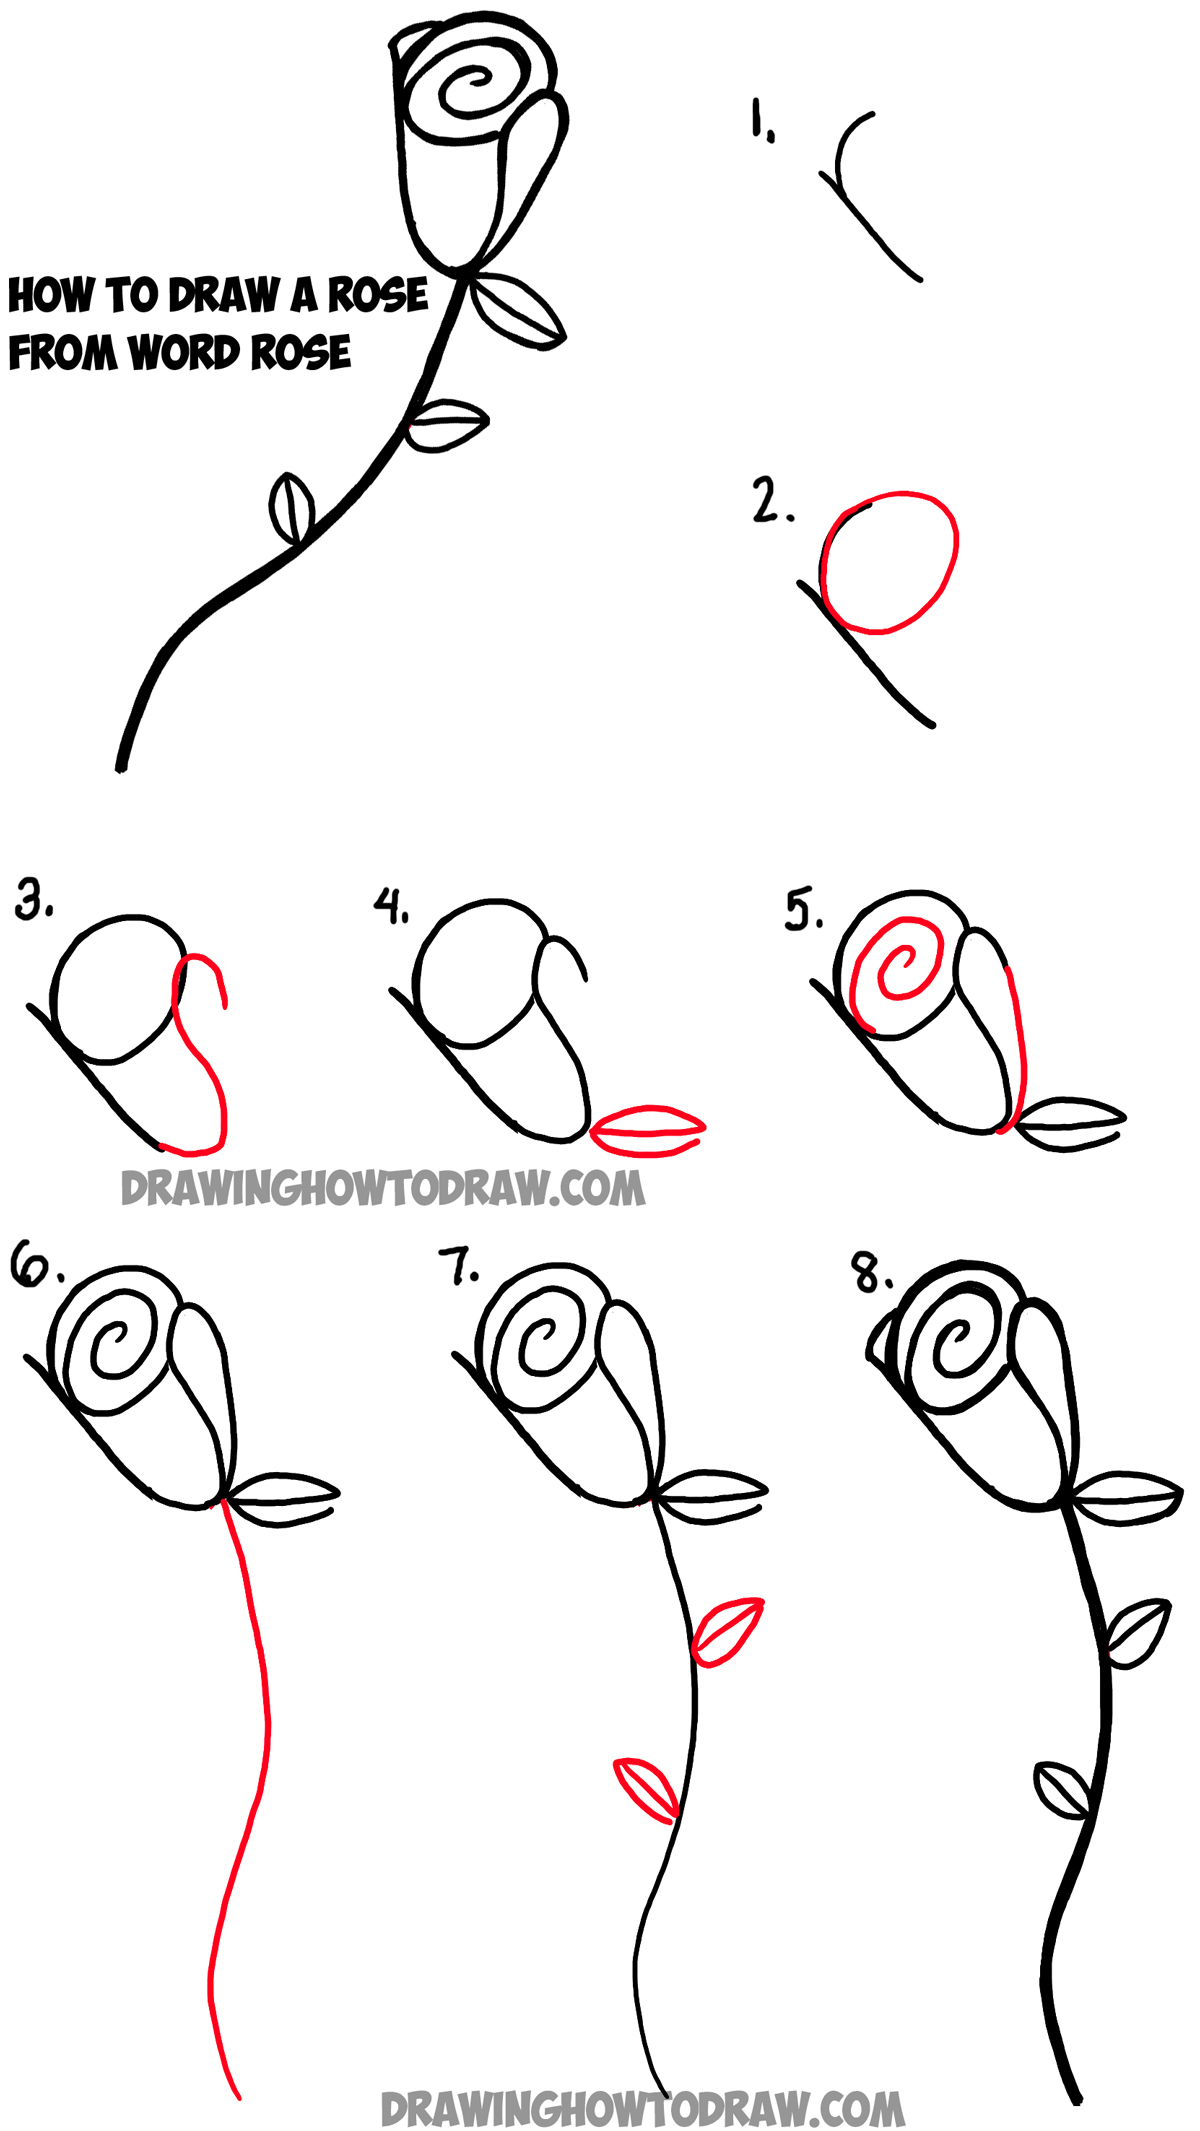 How to draw a rose from word rose drawing tutorial for for How to make cartoon drawings step by step